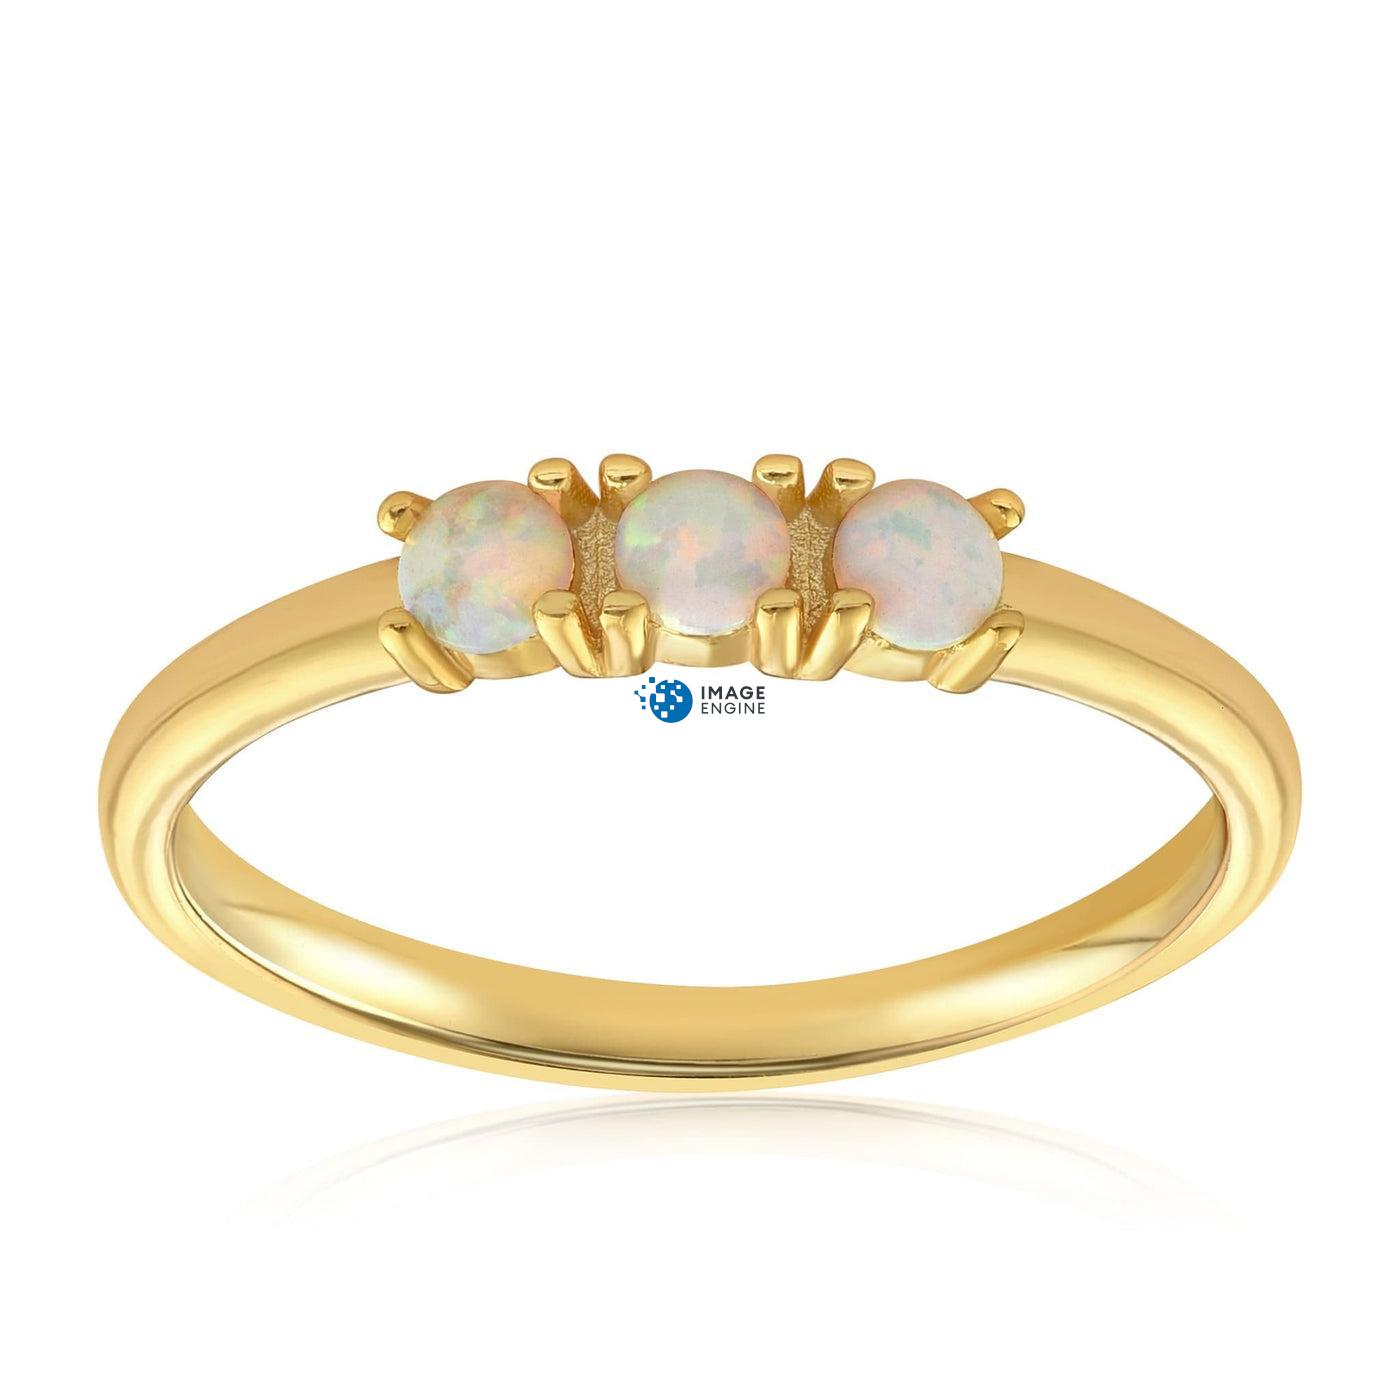 Simple Dots White Fire Opal Ring - Front View Facing Up - 18K Yellow Gold Vermeil Featured